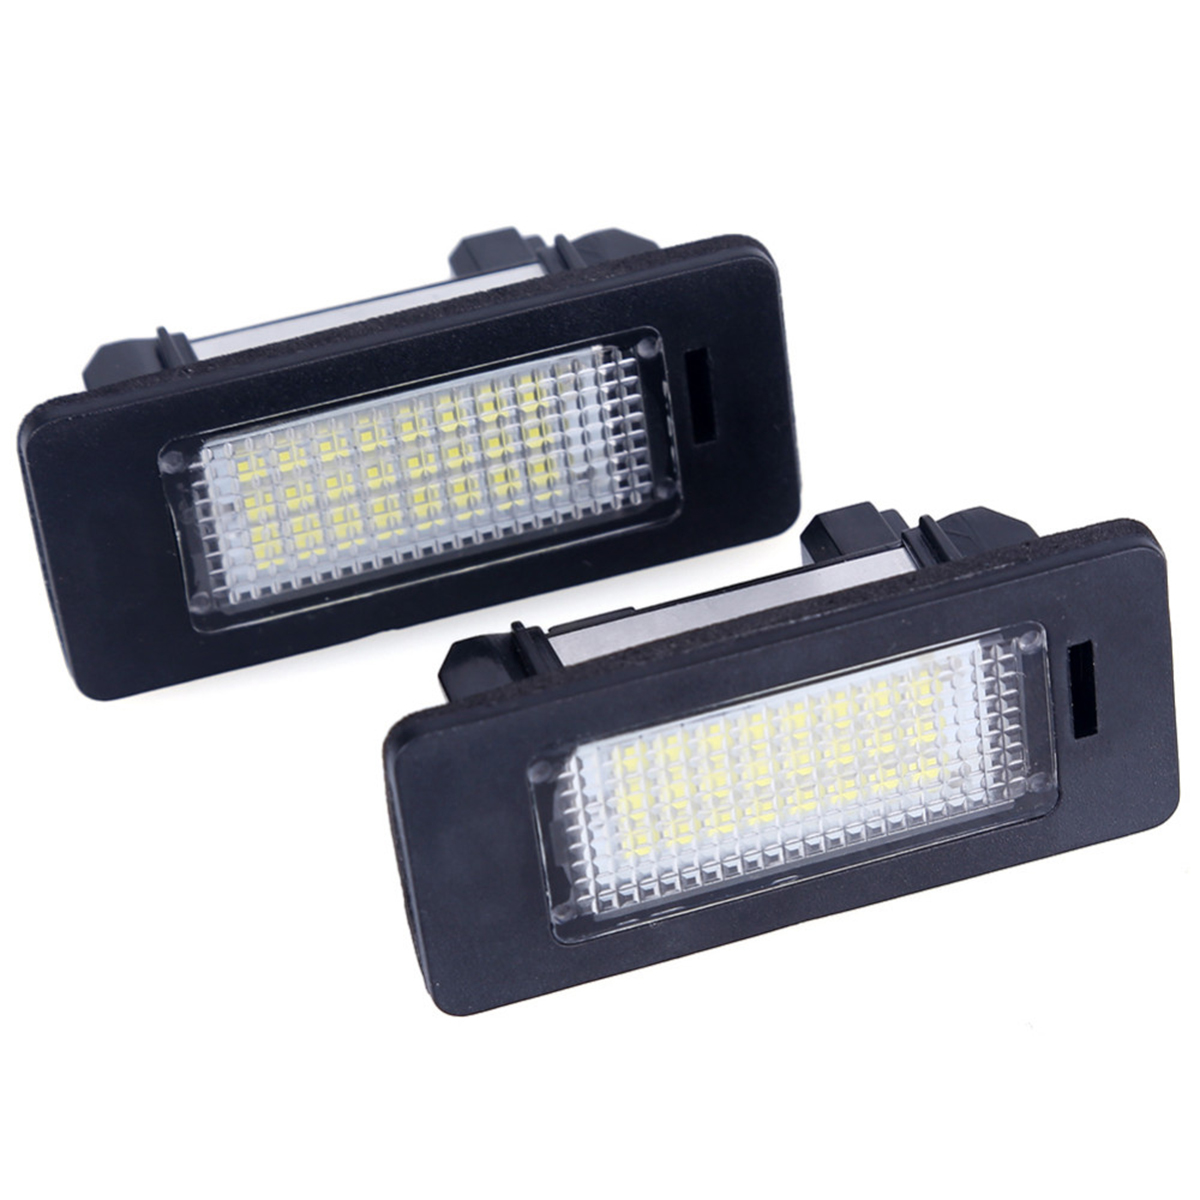 Brand New 2 Pieces LED Quantity 24 18SMD LED Number License Plate Lights For BMW E39 E70 E71 X5 X6 E60 M5 E90 E92 E93 M3 image